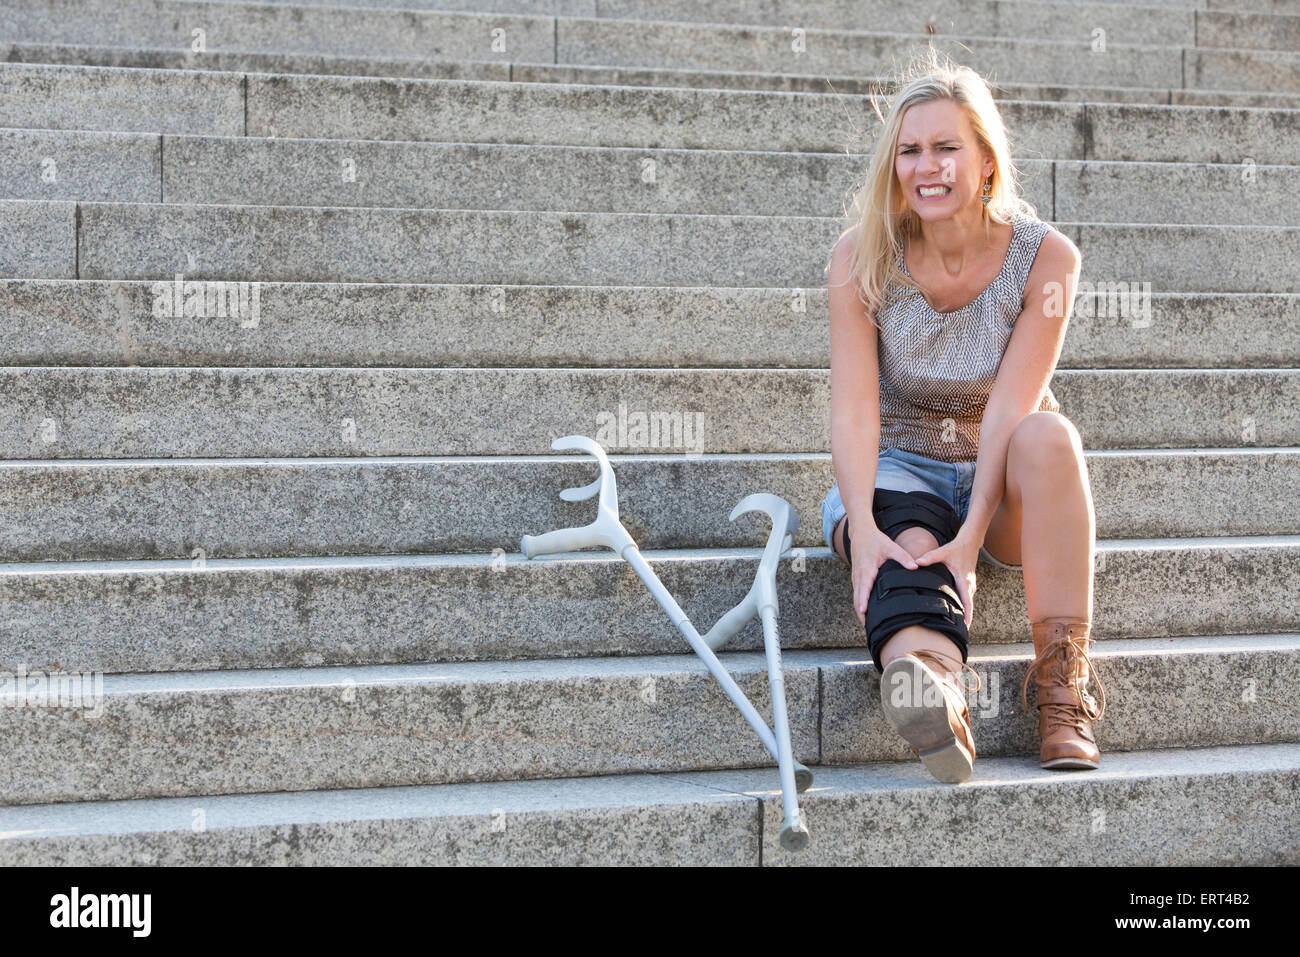 Crutches Stairs Stock Photos Crutches Stairs Stock Images Alamy